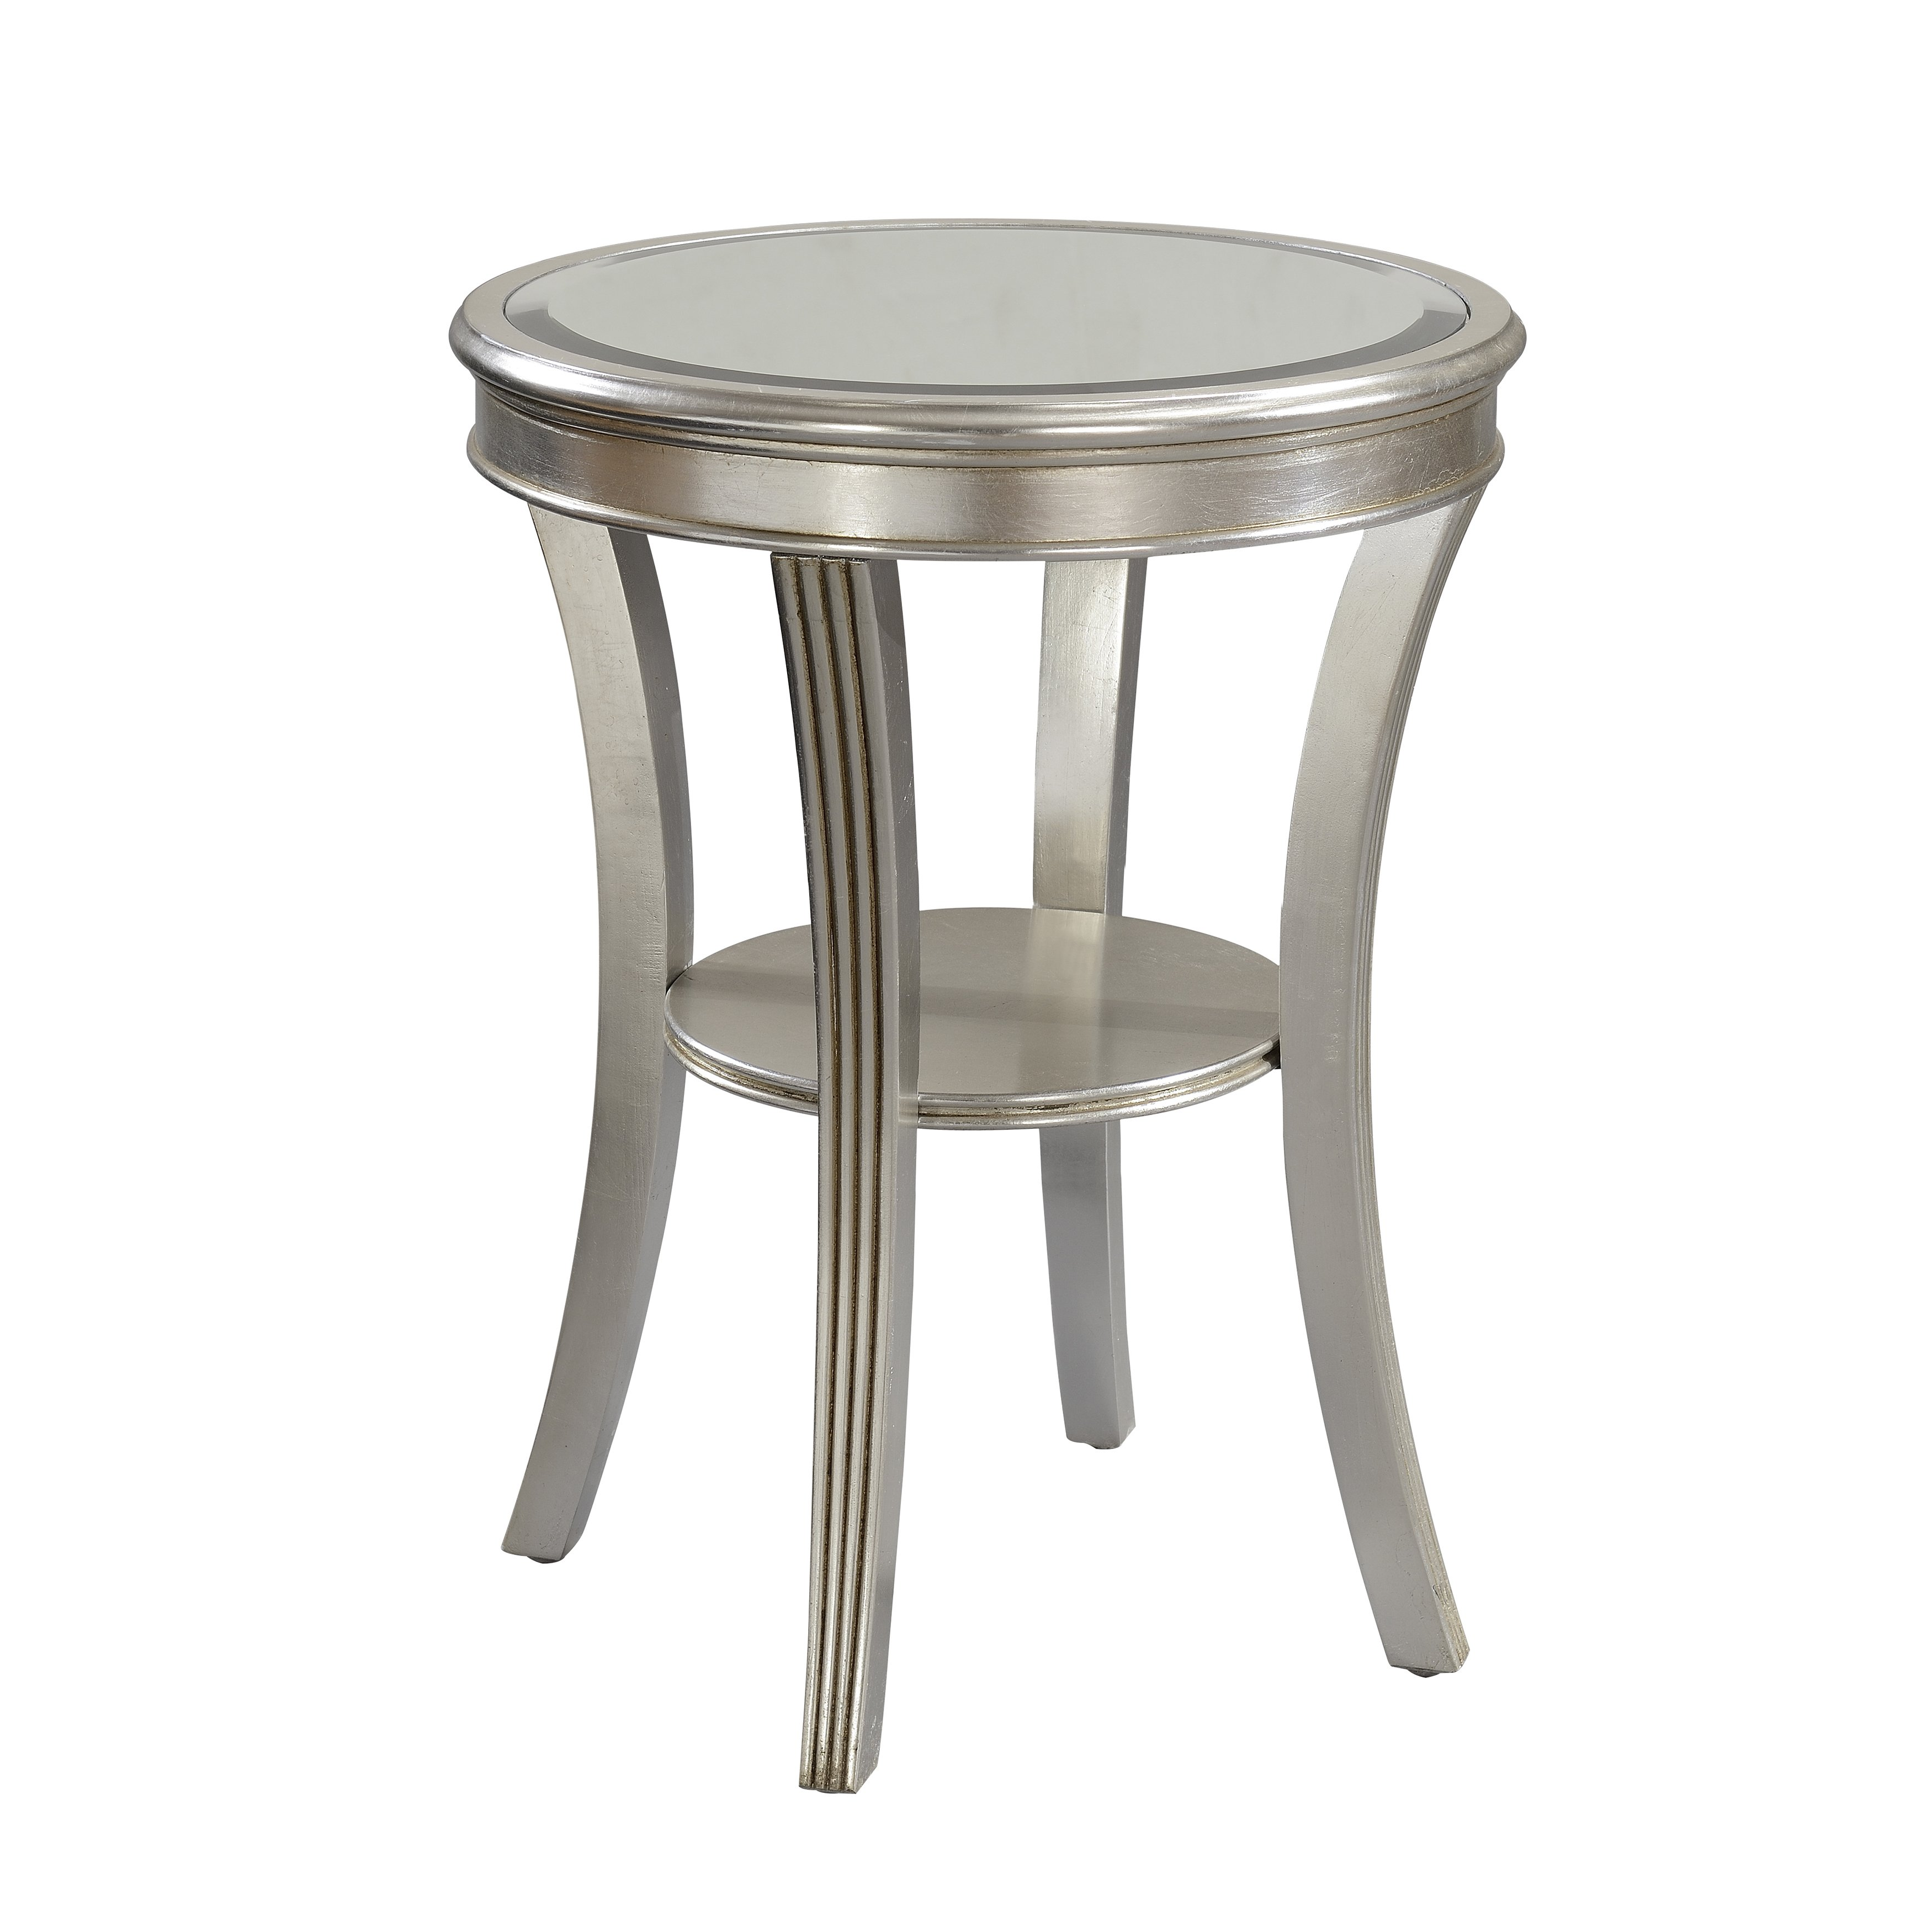 christopher knight home round silver accent table free small grey shipping today folding patio side ginger jar lamps green porcelain ashley furniture trunk coffee black dining